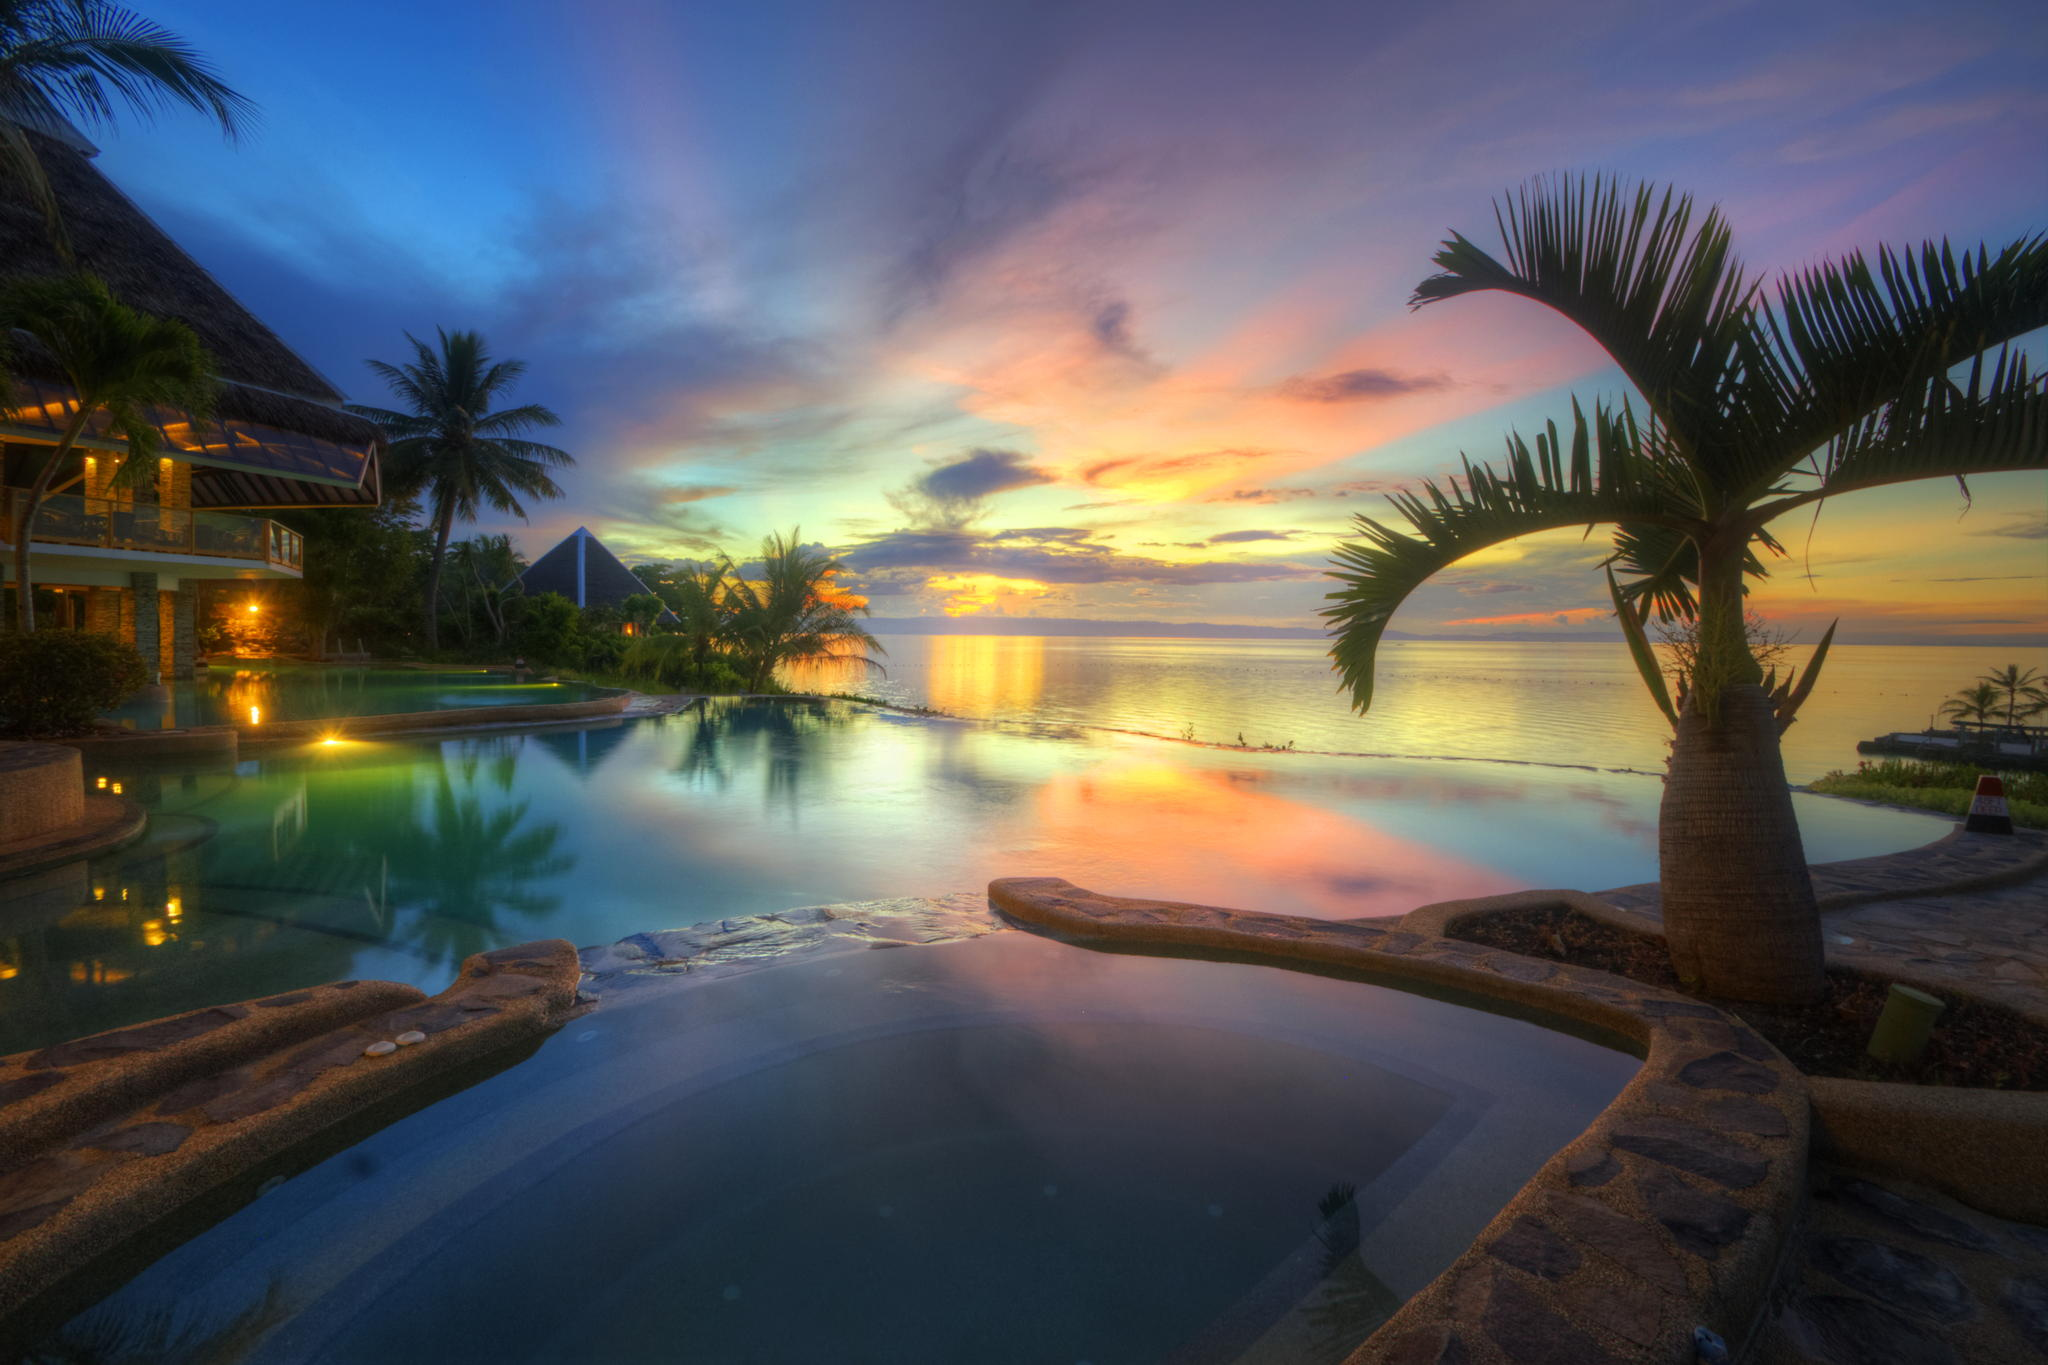 Man Made   Resort Tropical Pool Palm Tree Ocean Sea Sunset Horizon Wallpaper